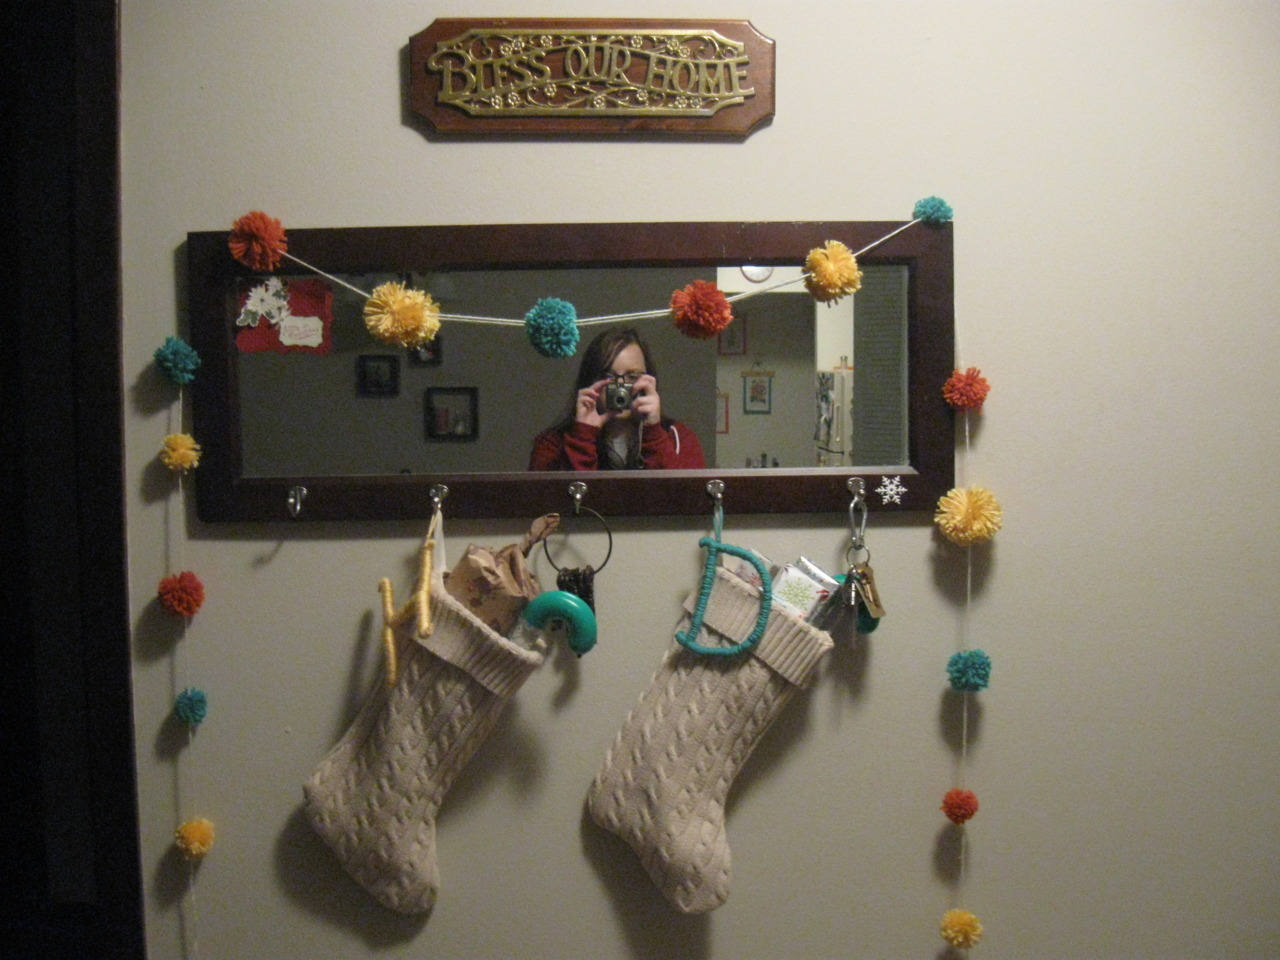 My holiday yarn garland & stockings made out of thrift store sweaters!